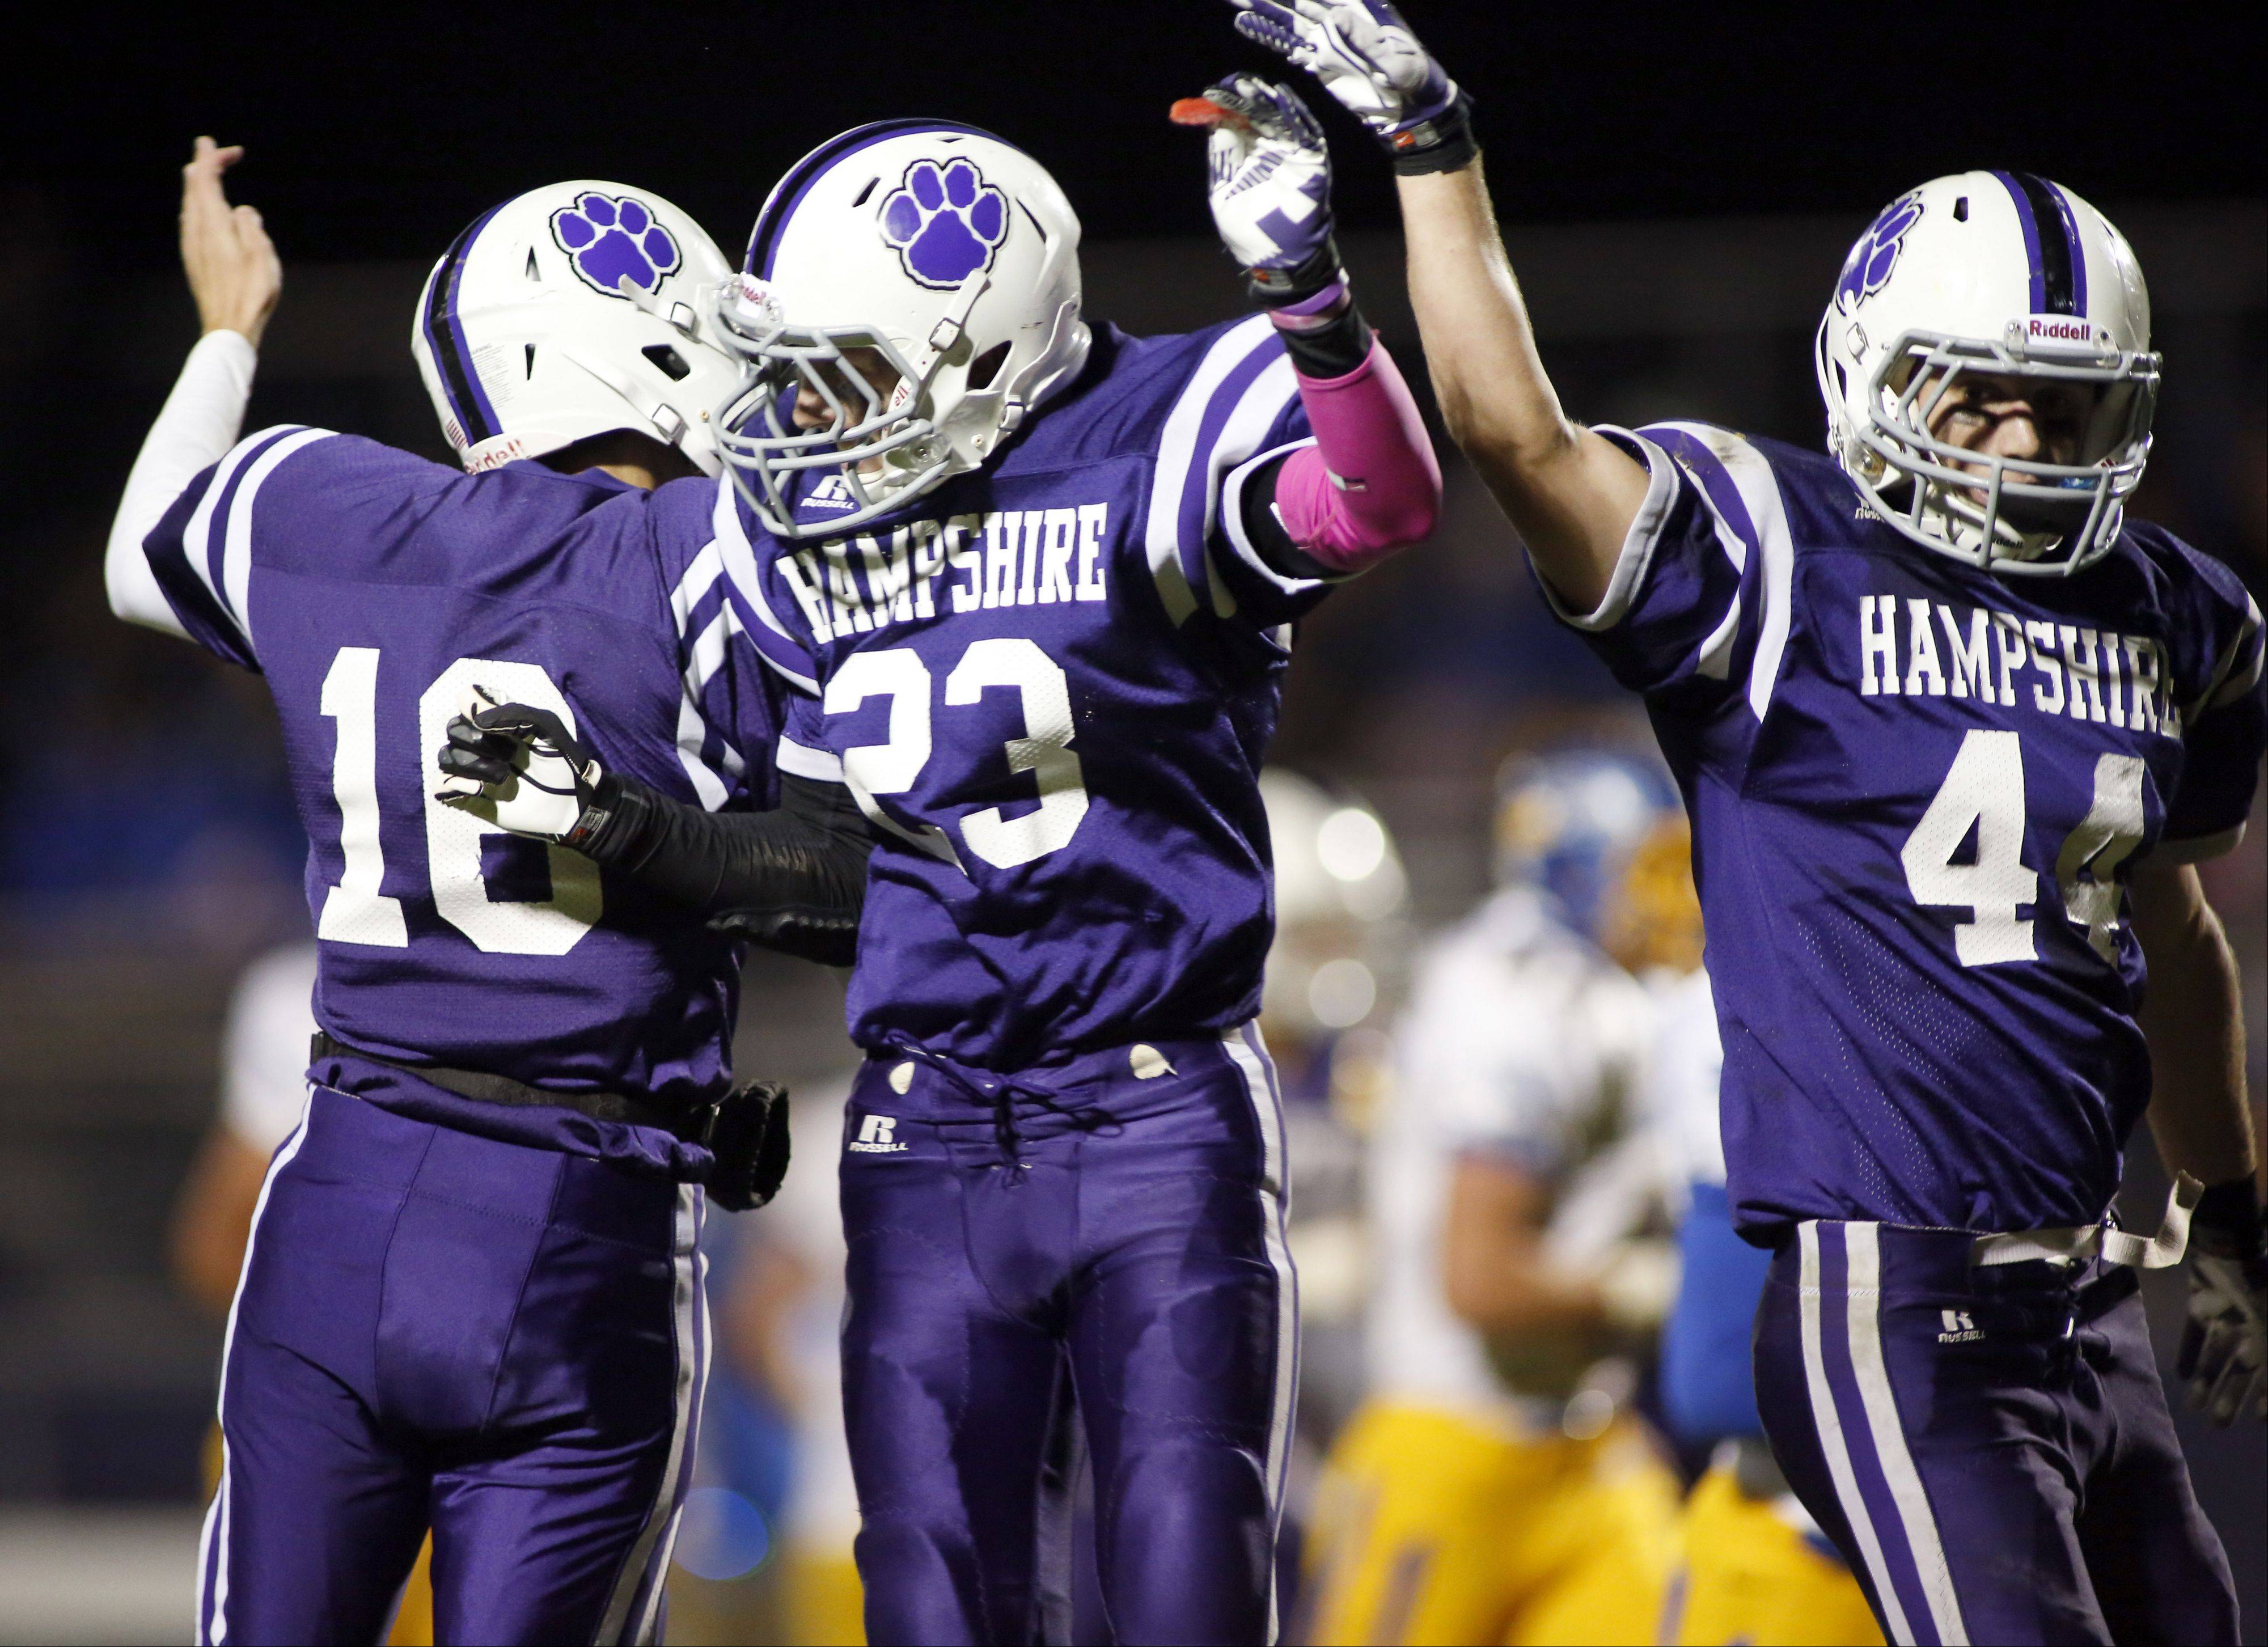 Hampshire�s Nick Mohlman celebrates a touchdown with Trey Schramm and Mason Fleury .